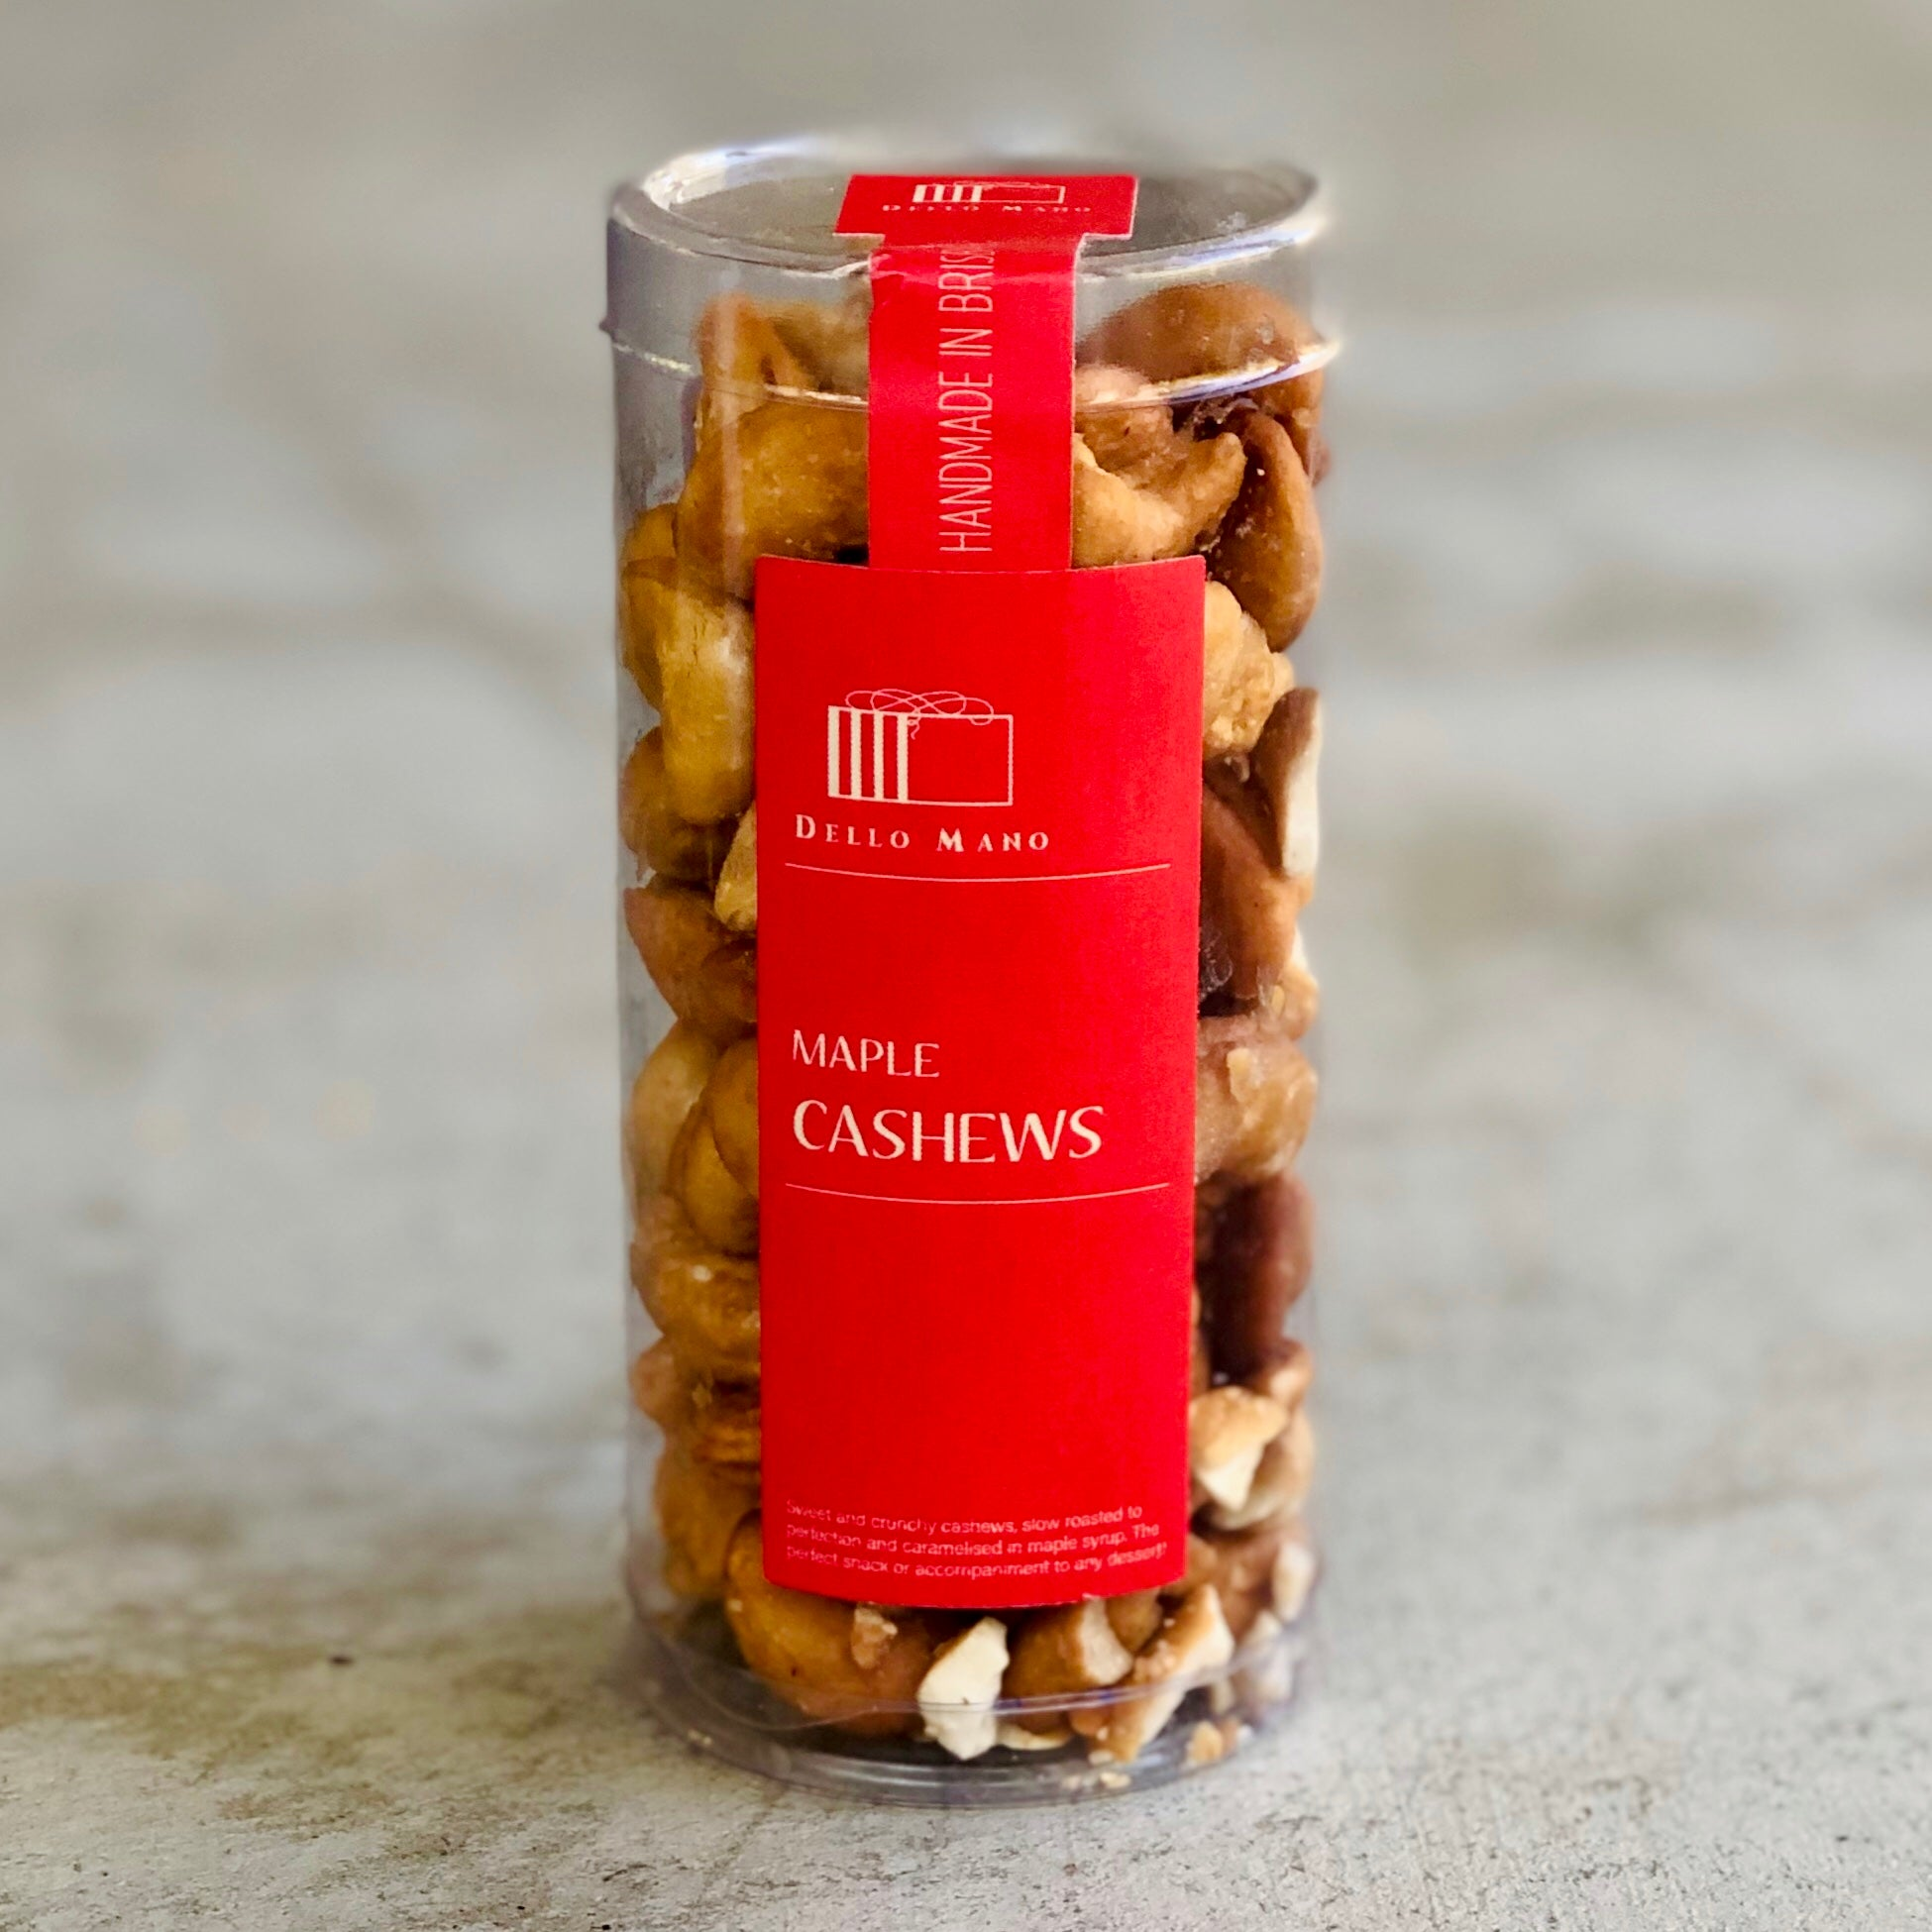 A tube of Maple Caramelised Cashews with red label on concrete base